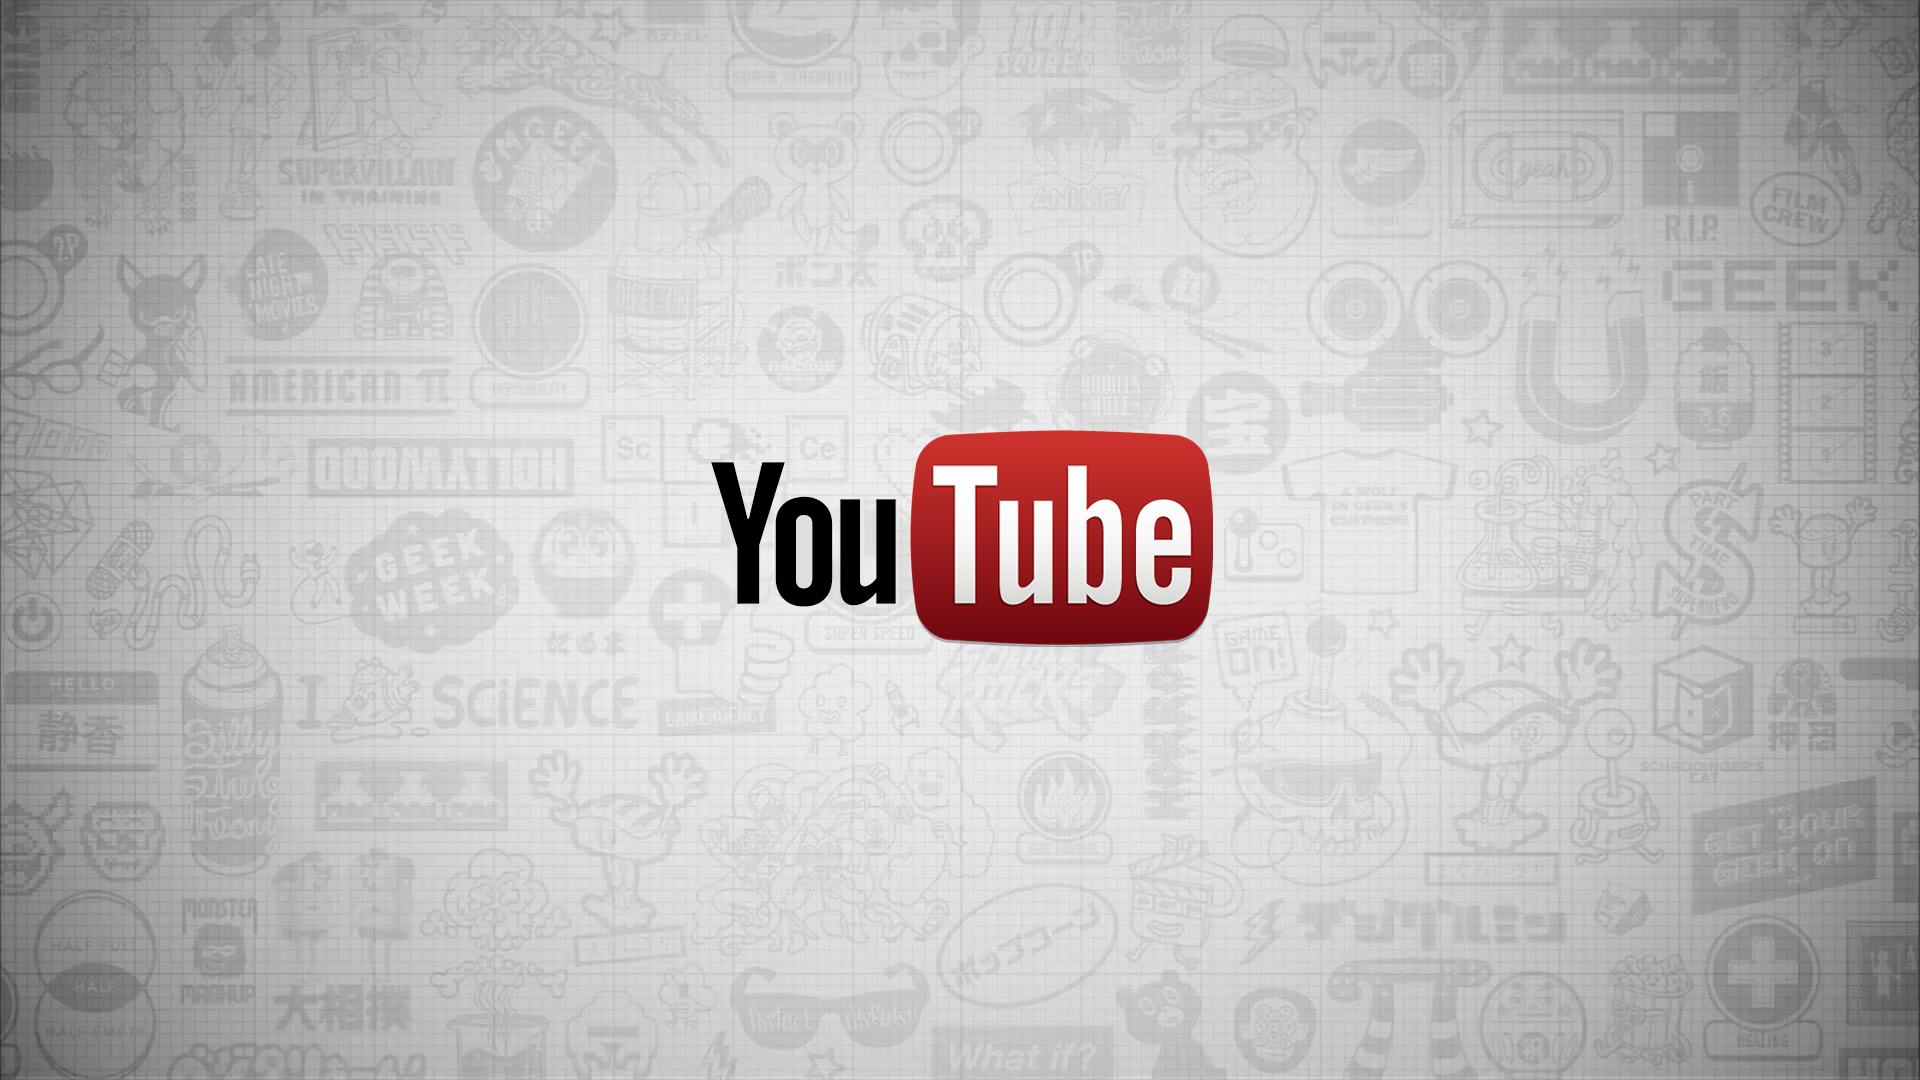 Youtube HD Wallpapers 6 - The Top Videos our Loyal Fans Watched this 2015